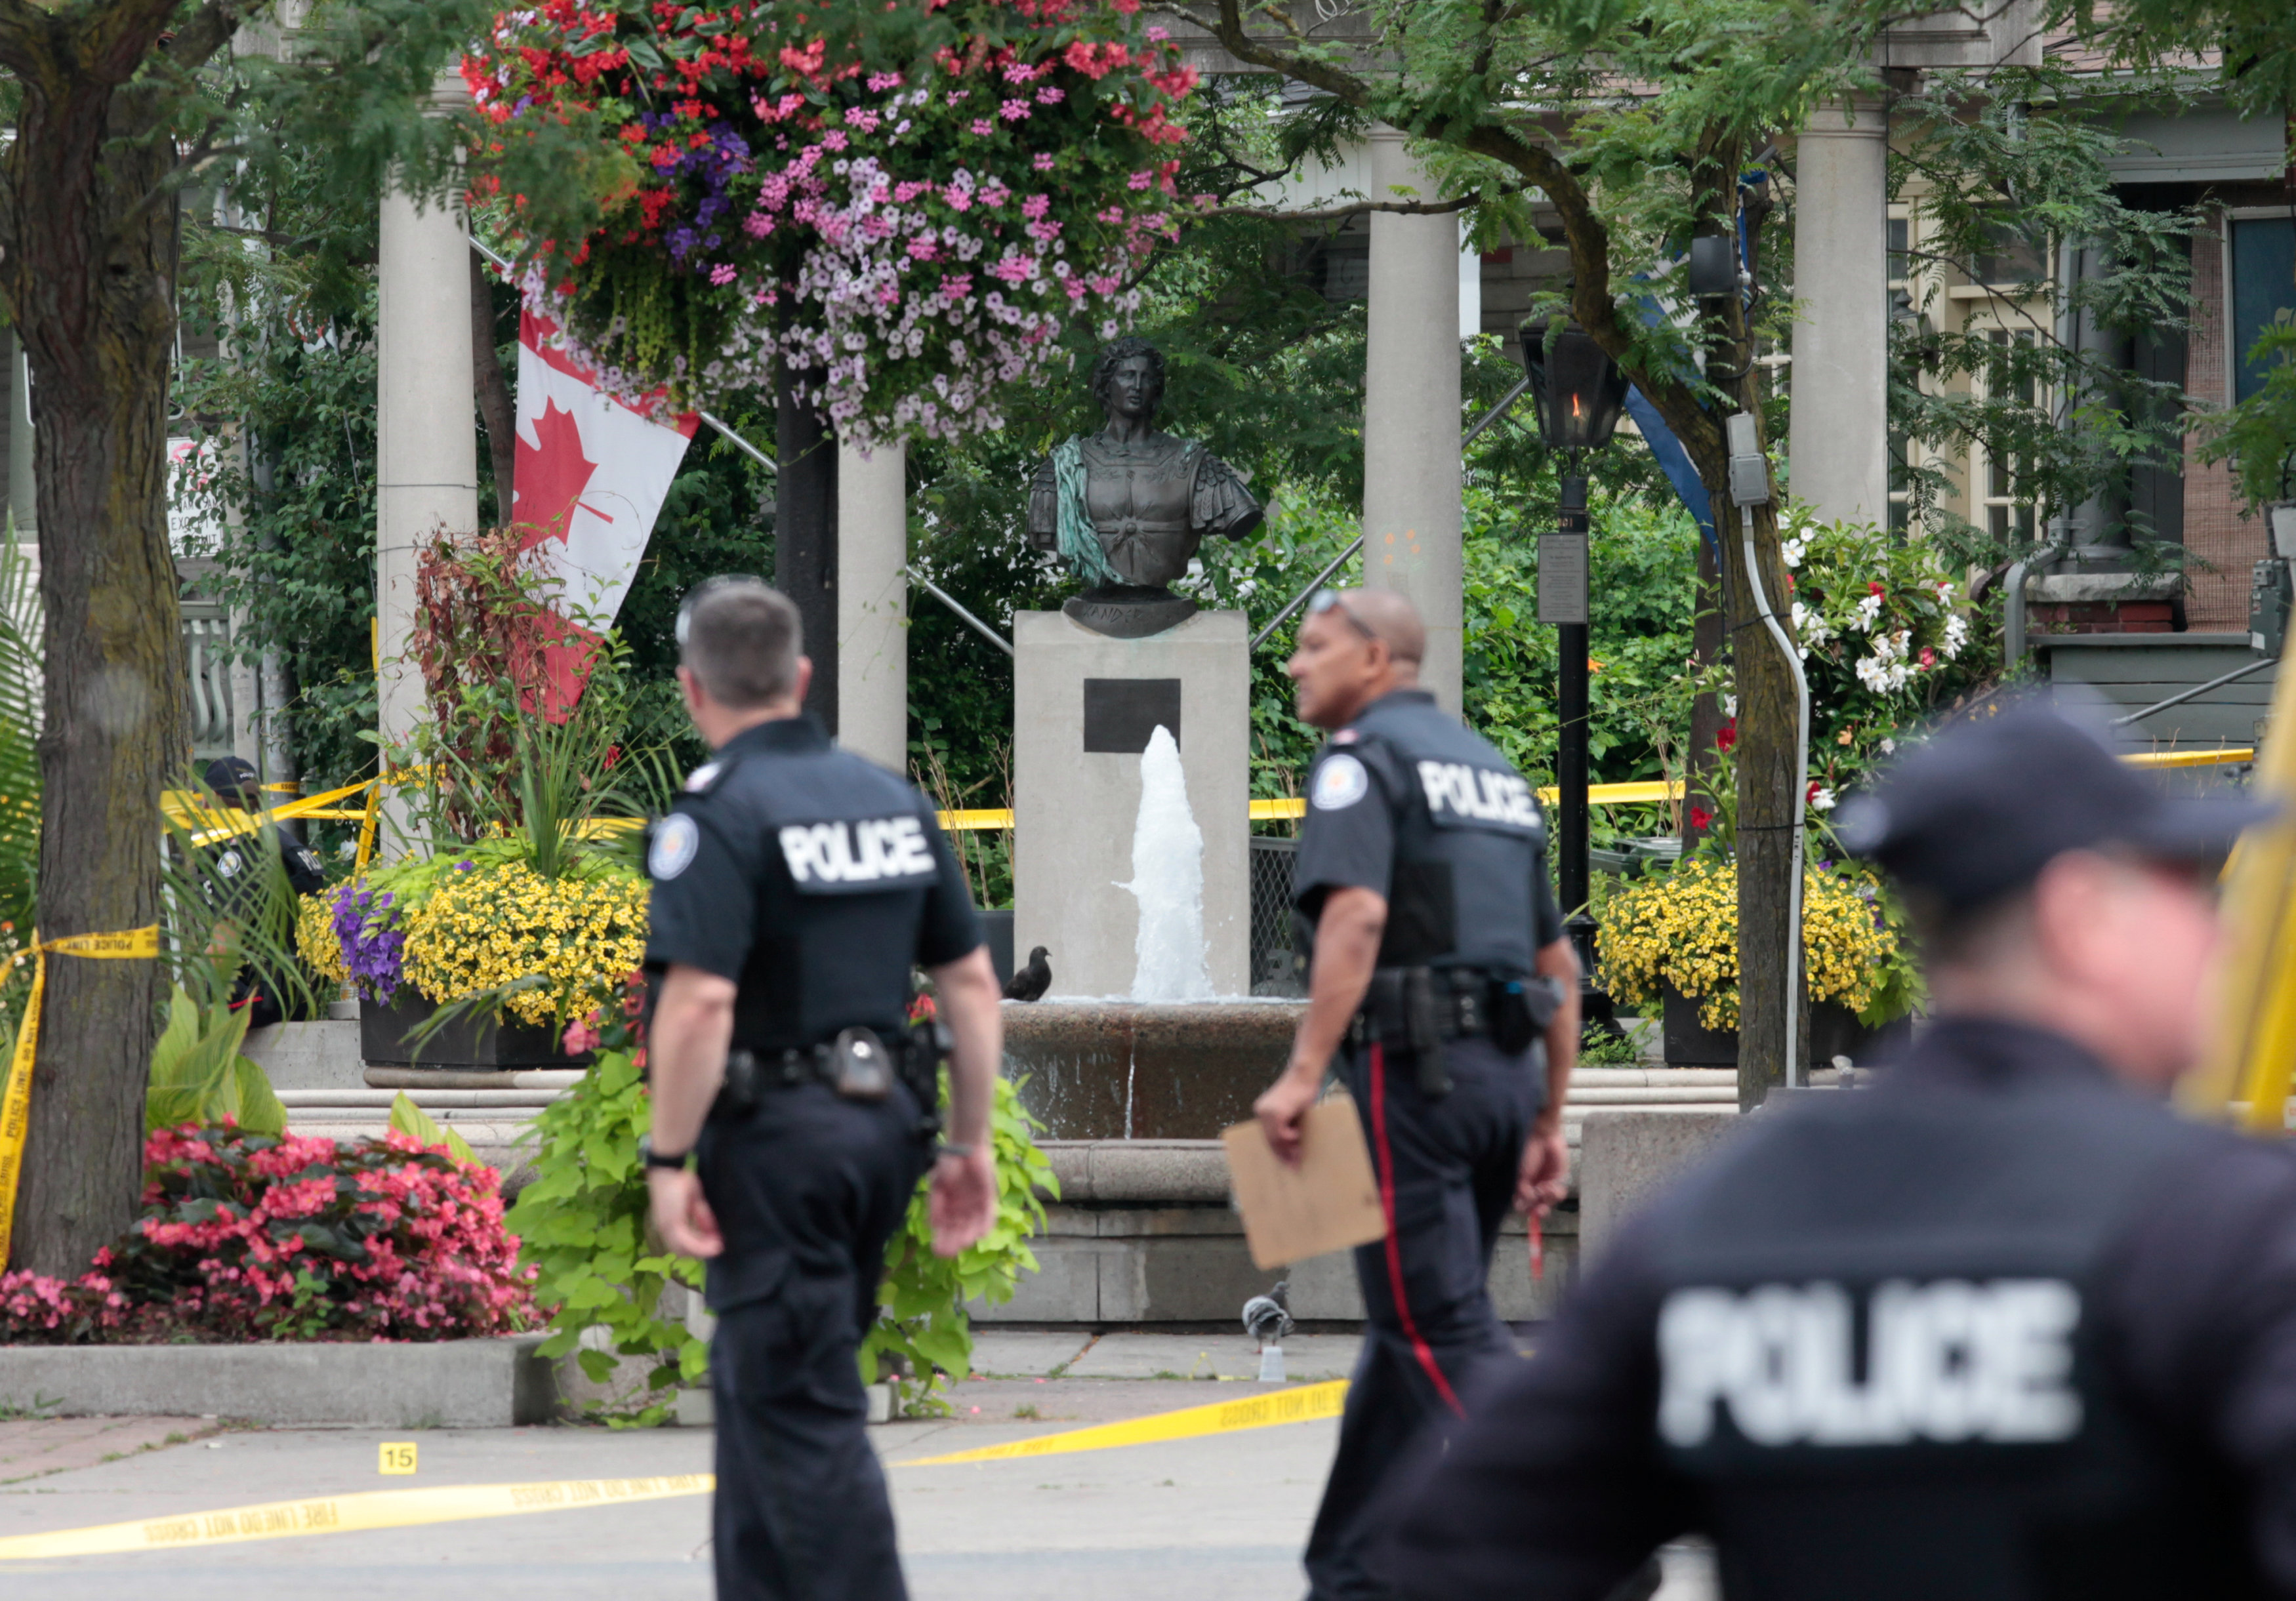 Police officers walk past Alexander the Great Parkette while investigating a mass shooting on Danforth Avenue in Toronto, Canada, July 23, 2018. REUTERS/Chris Helgren